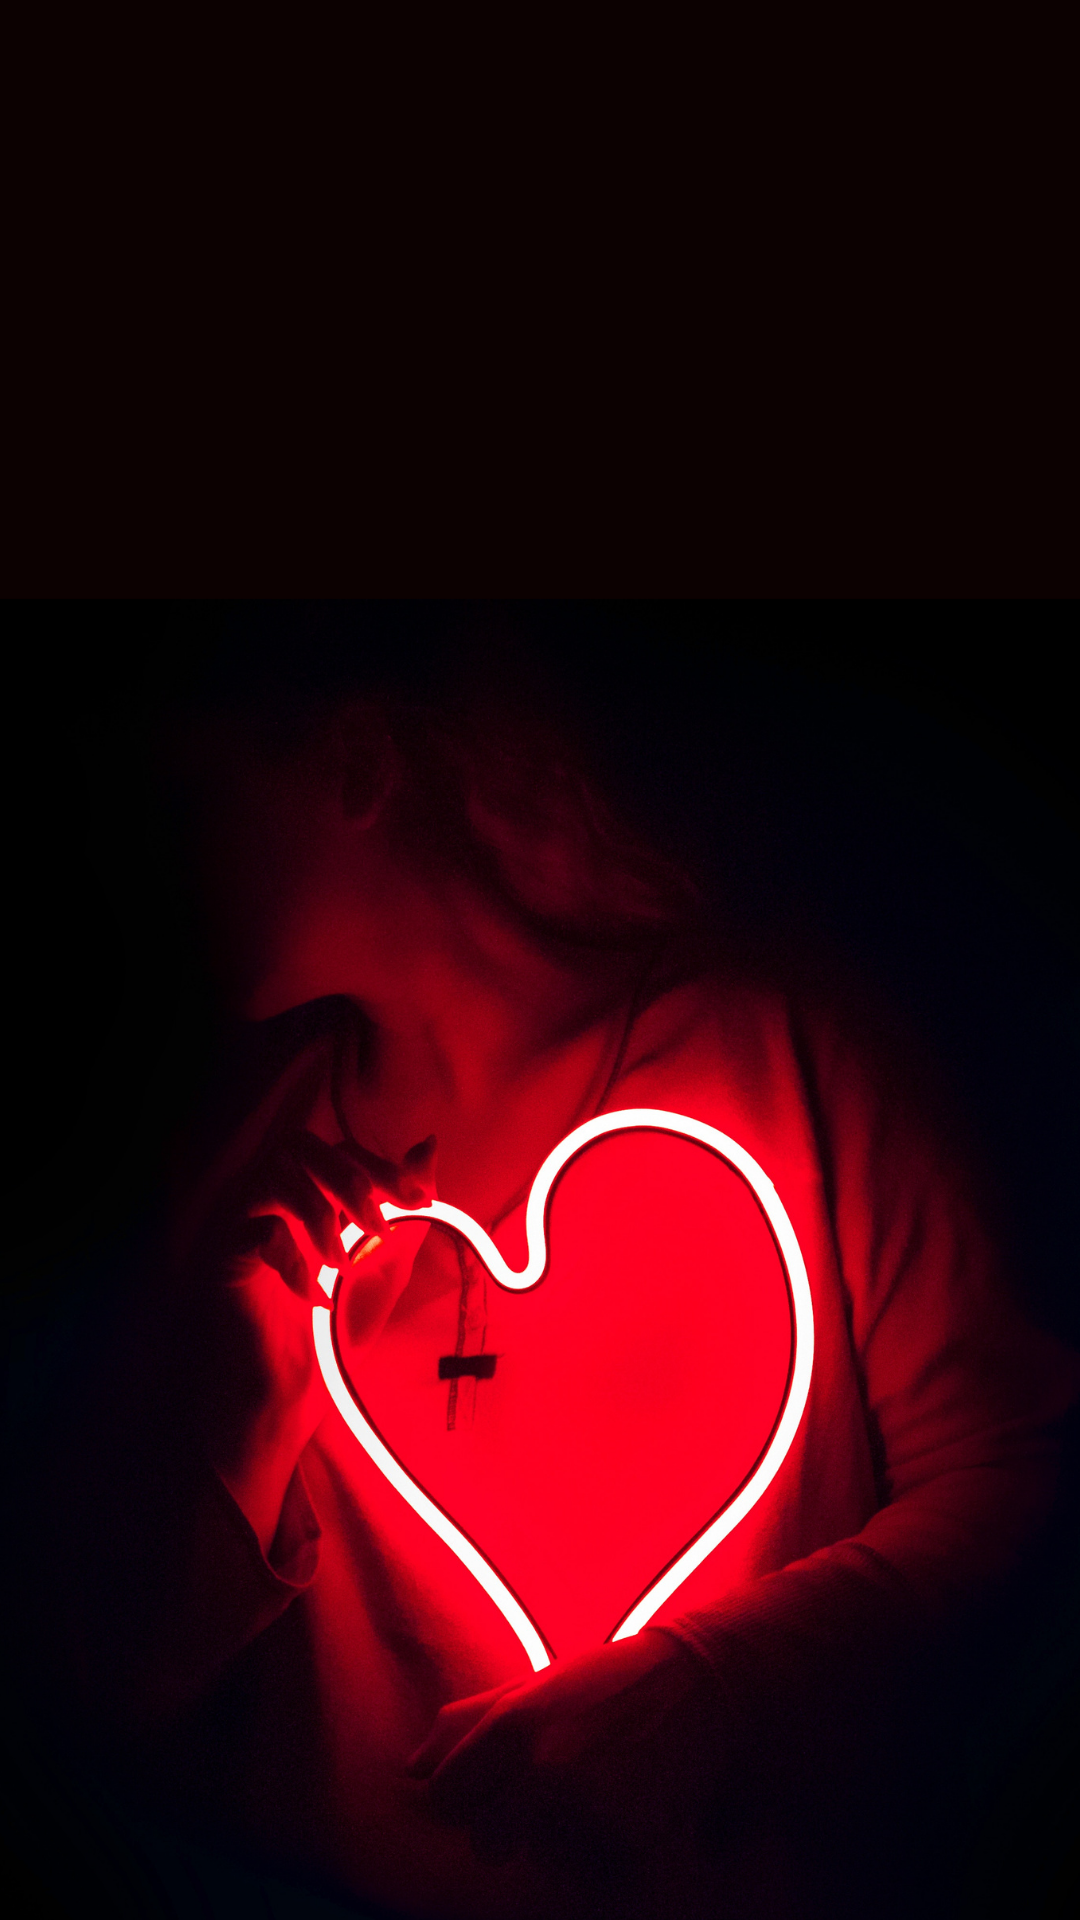 Neon Red Aesthetic Wallpaper For iPhone ...